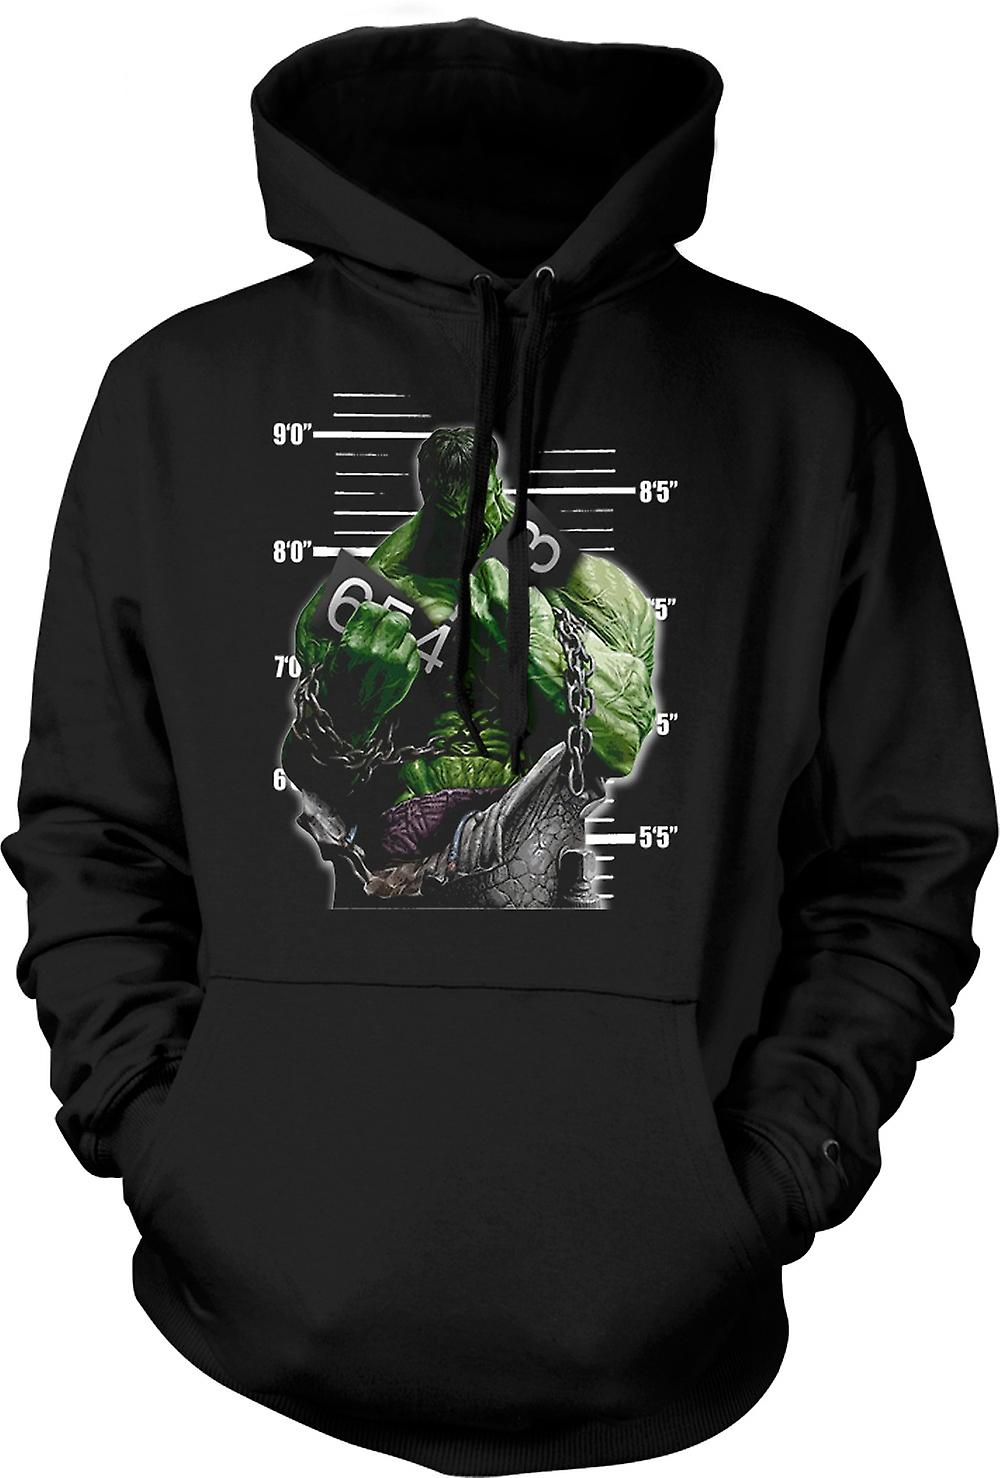 Kids Hoodie - The Hulk - Cartoon - Chains